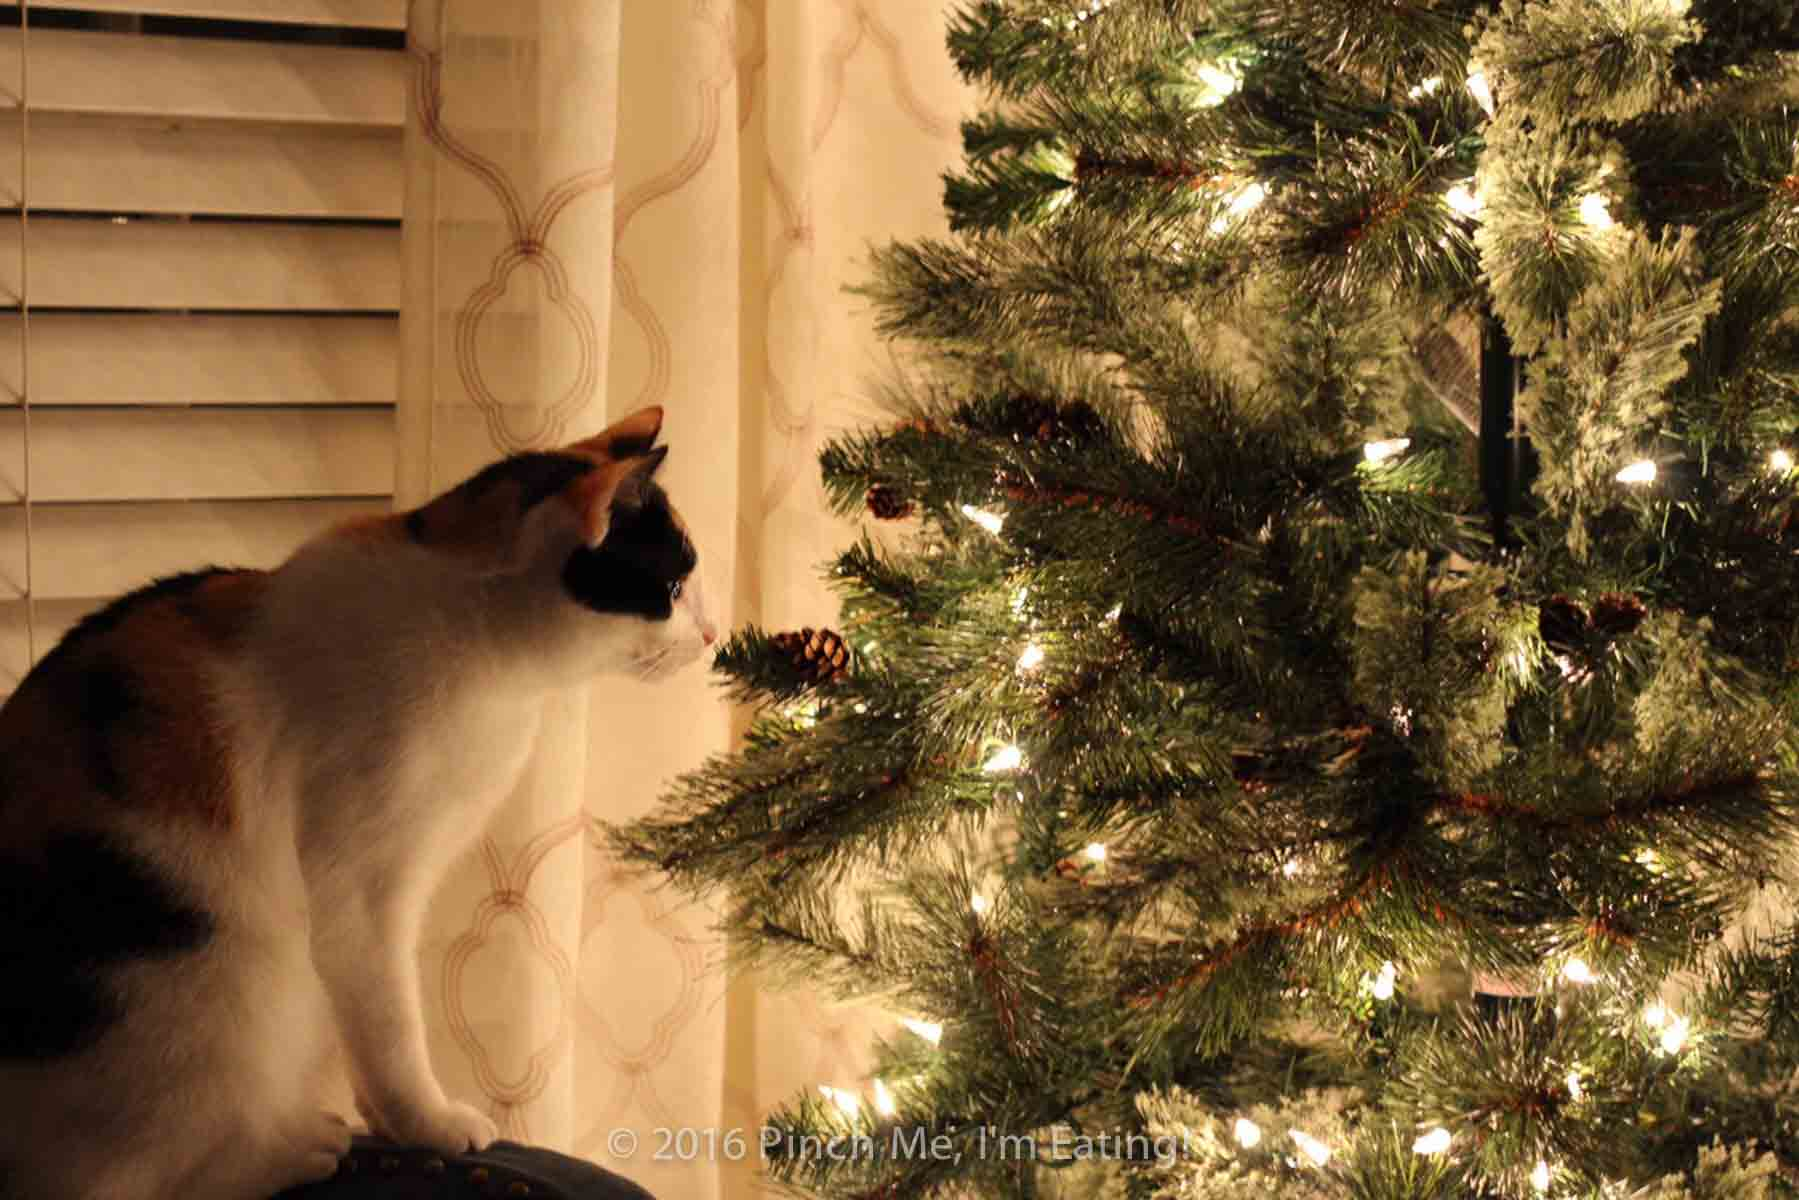 Calico cat looking at Christmas tree with white lights